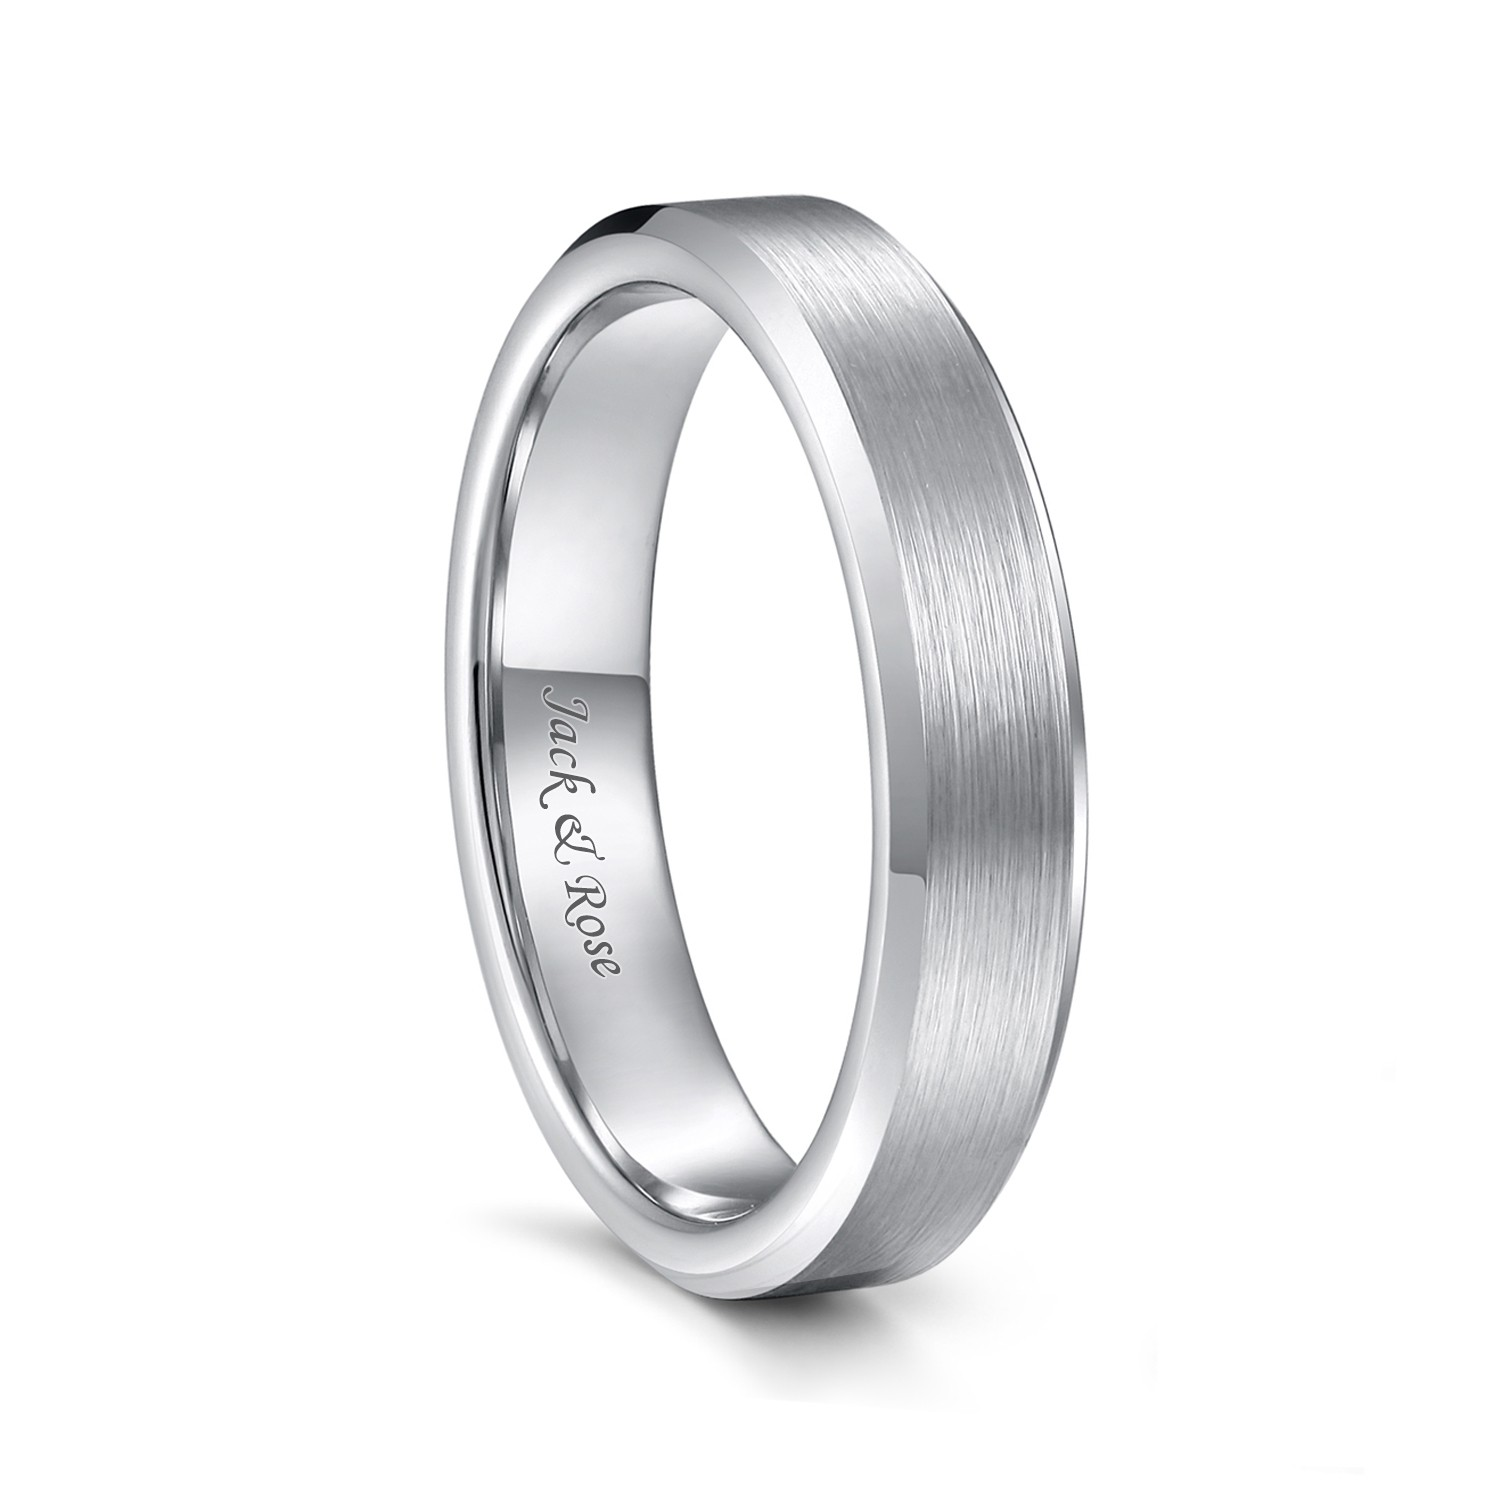 Silver Tungsten Wedding Bands For Men Women Brushed Center And Beveled Edge 4mm: Beveled Edge Matte Wedding Ring At Reisefeber.org